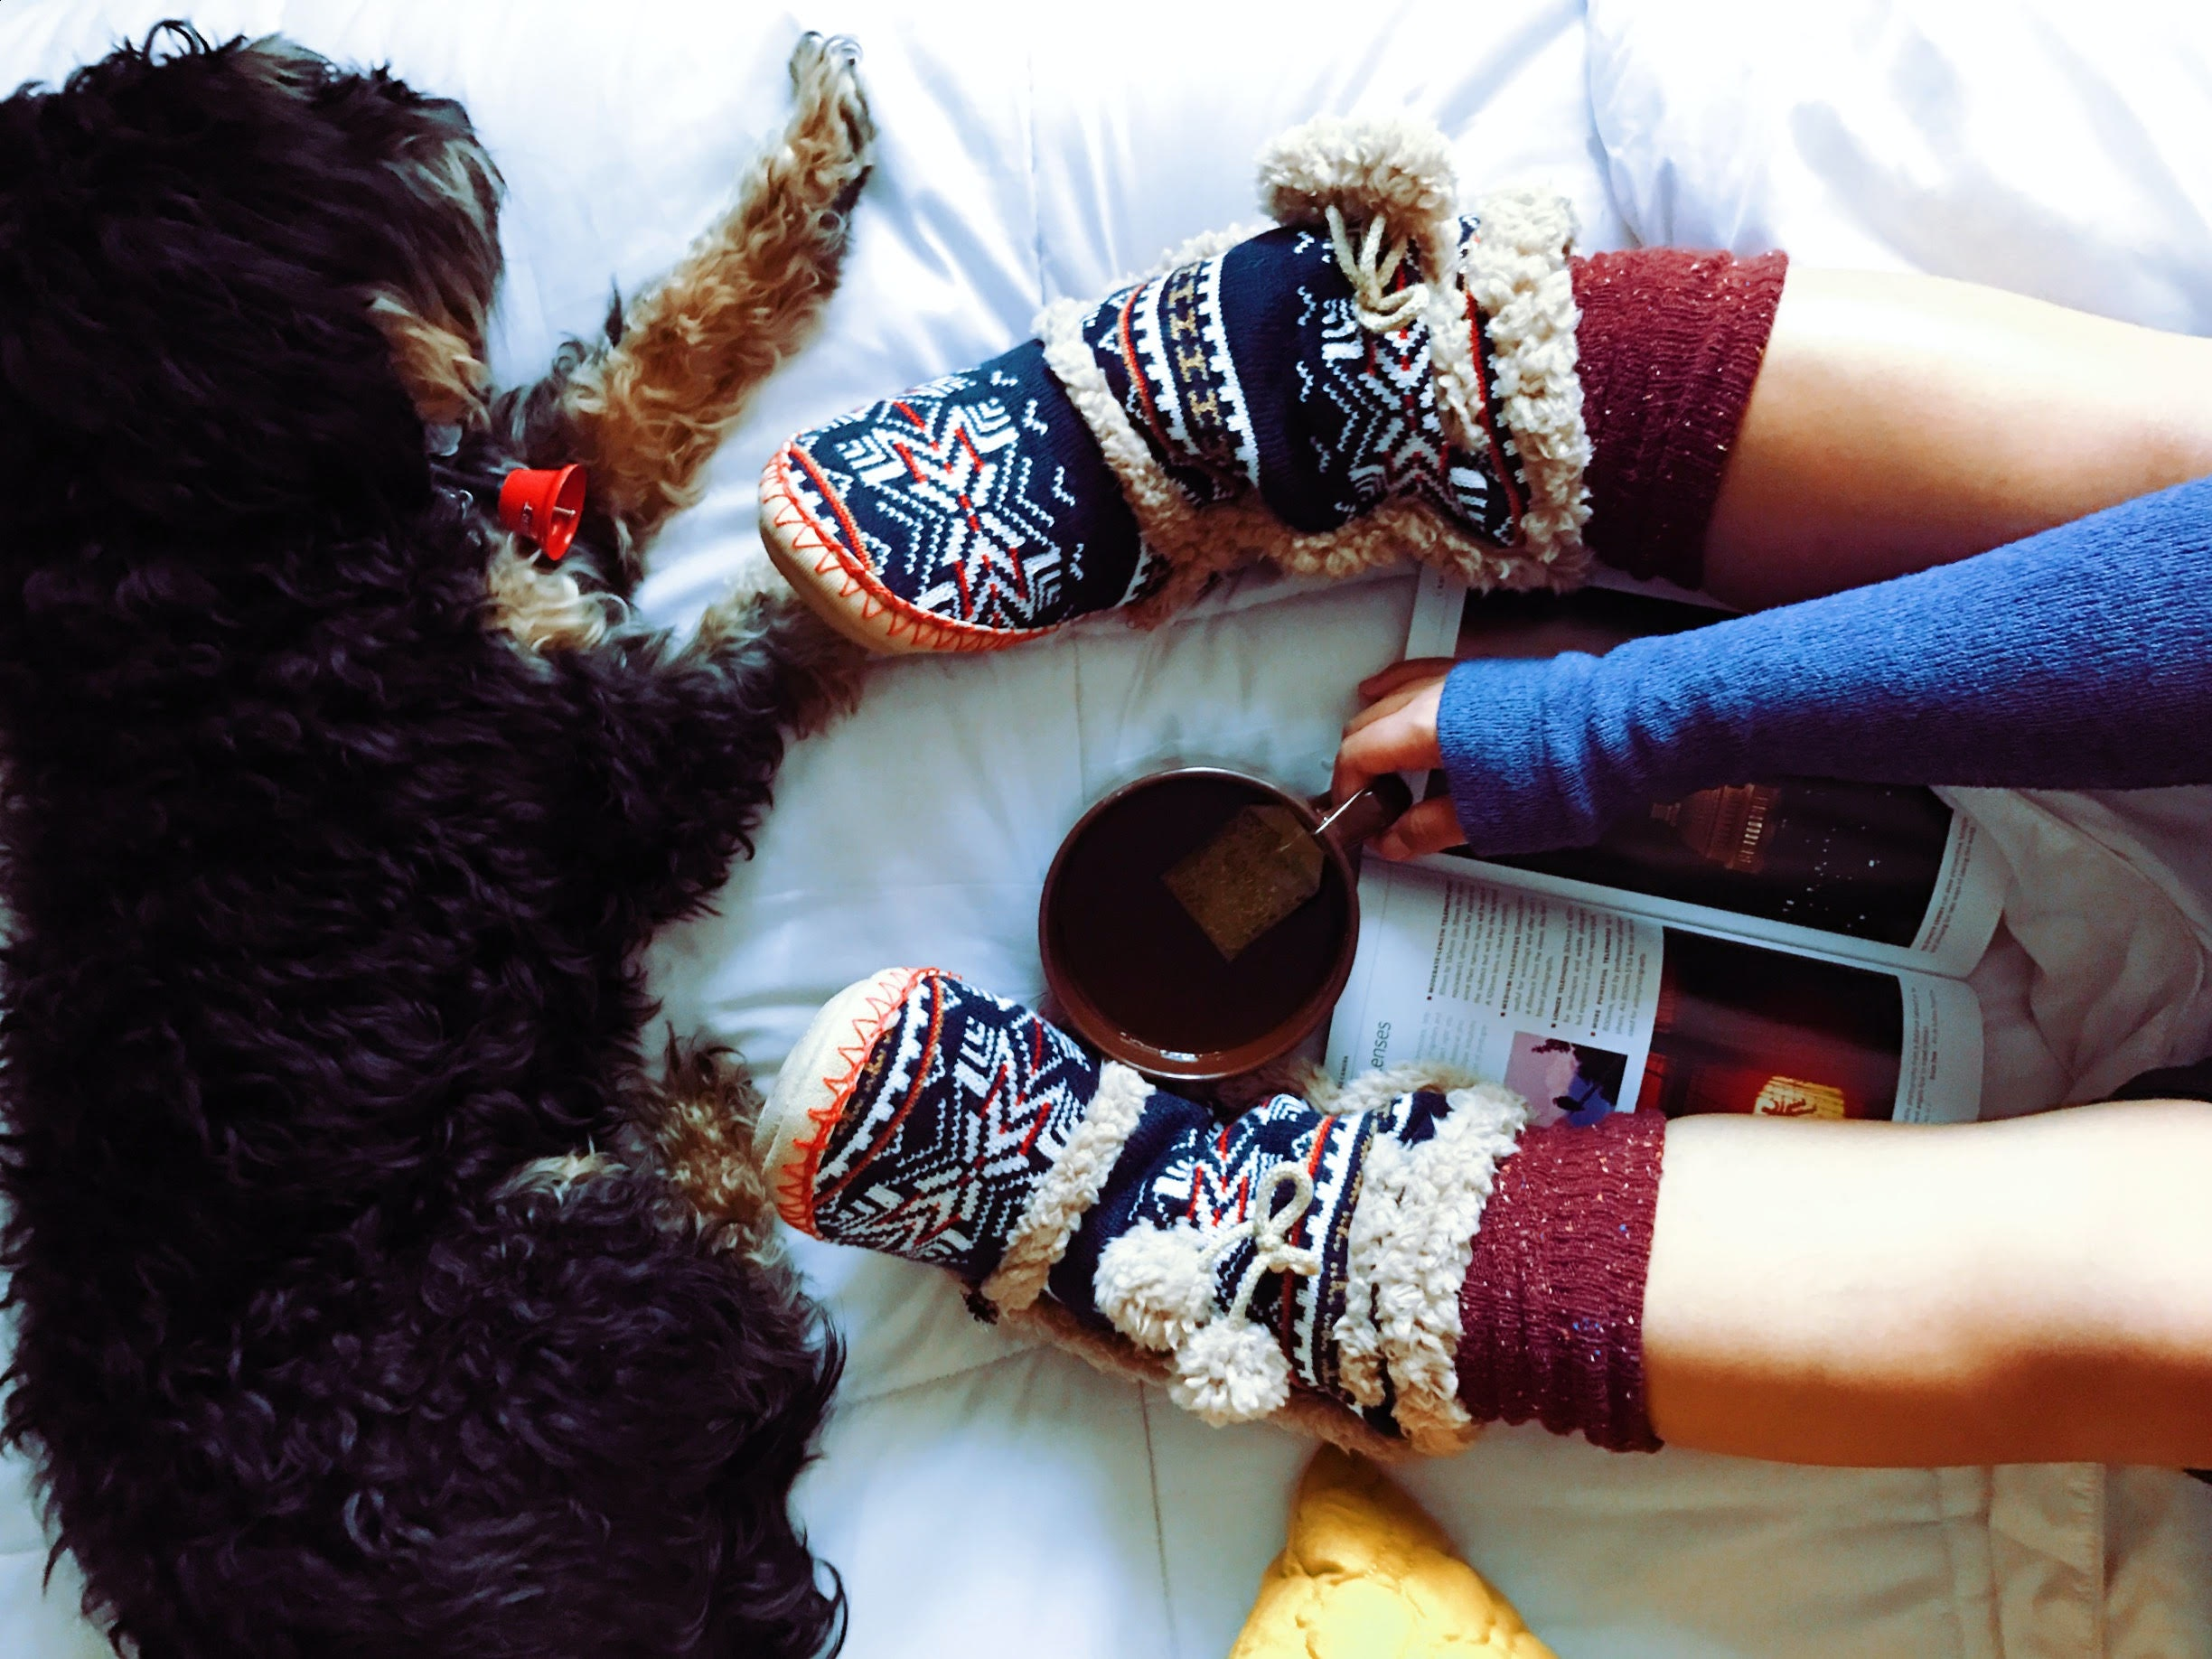 Winter Is the Season for Hygge